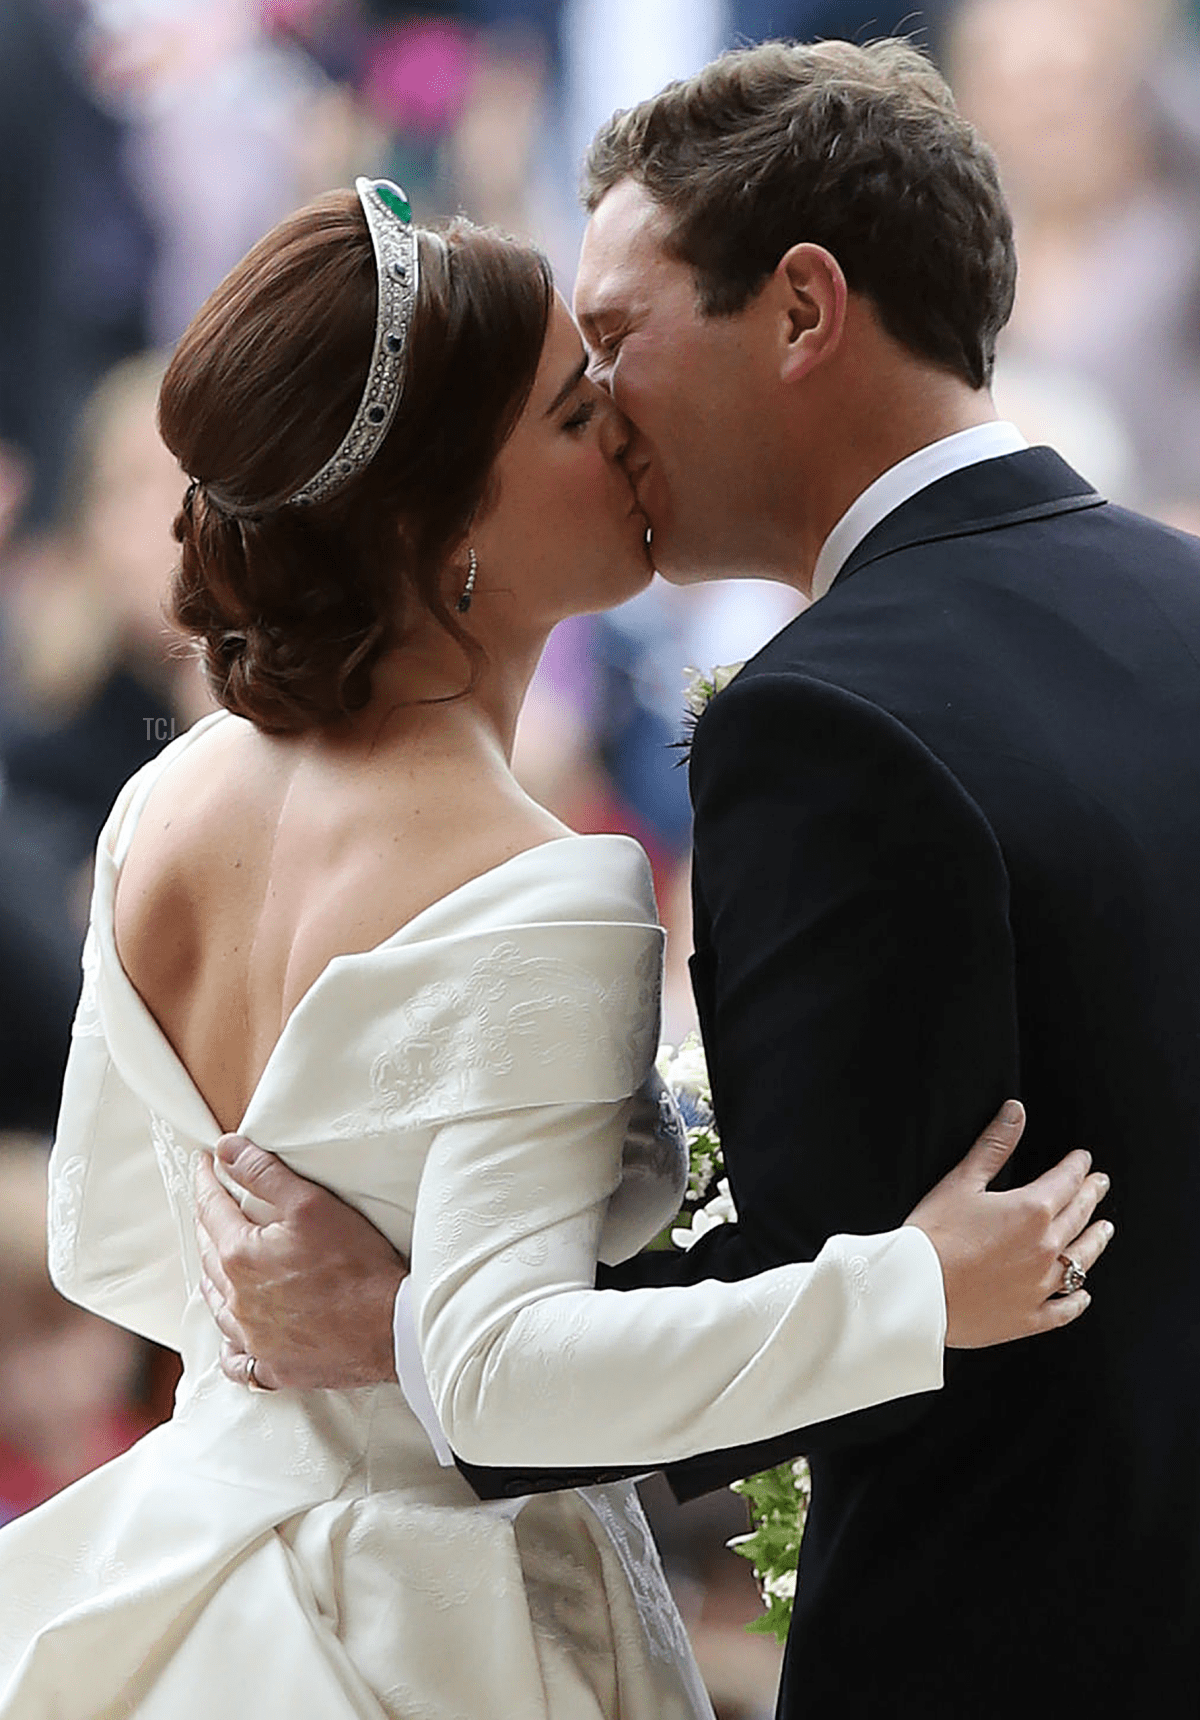 Britain's Princess Eugenie of York (L) and her husband Jack Brooksbank kiss as they emerge from the West Door of St George's Chapel, Windsor Castle, in Windsor, on October 12, 2018 after their wedding ceremony